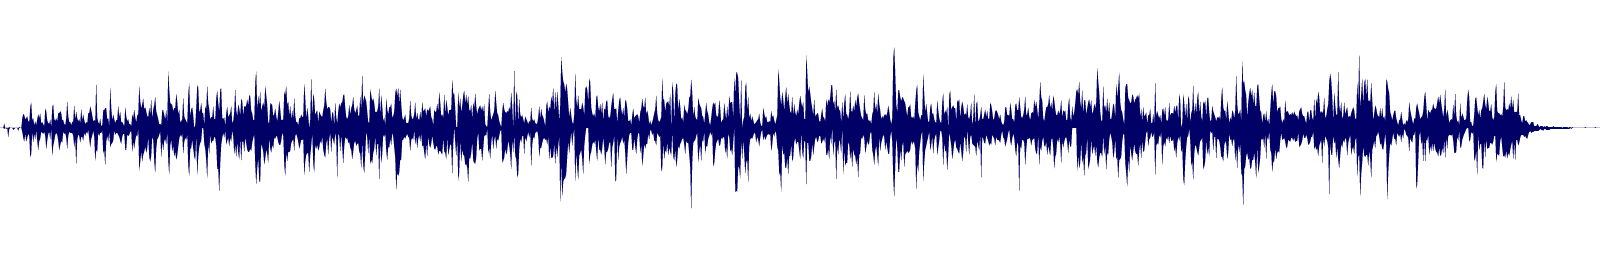 waveform of track #143838